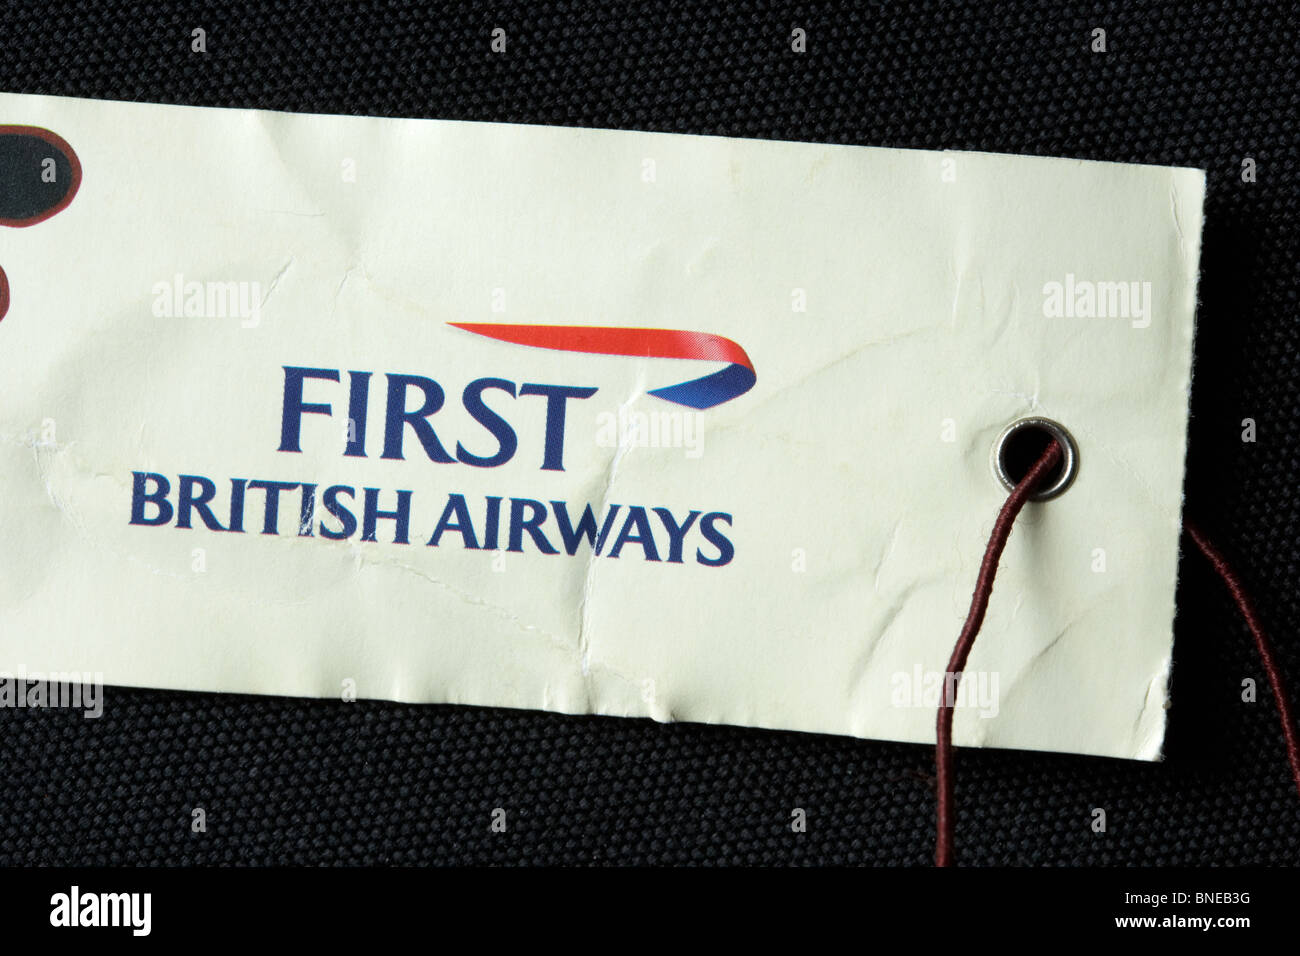 british airways first class flight luggage label - Stock Image